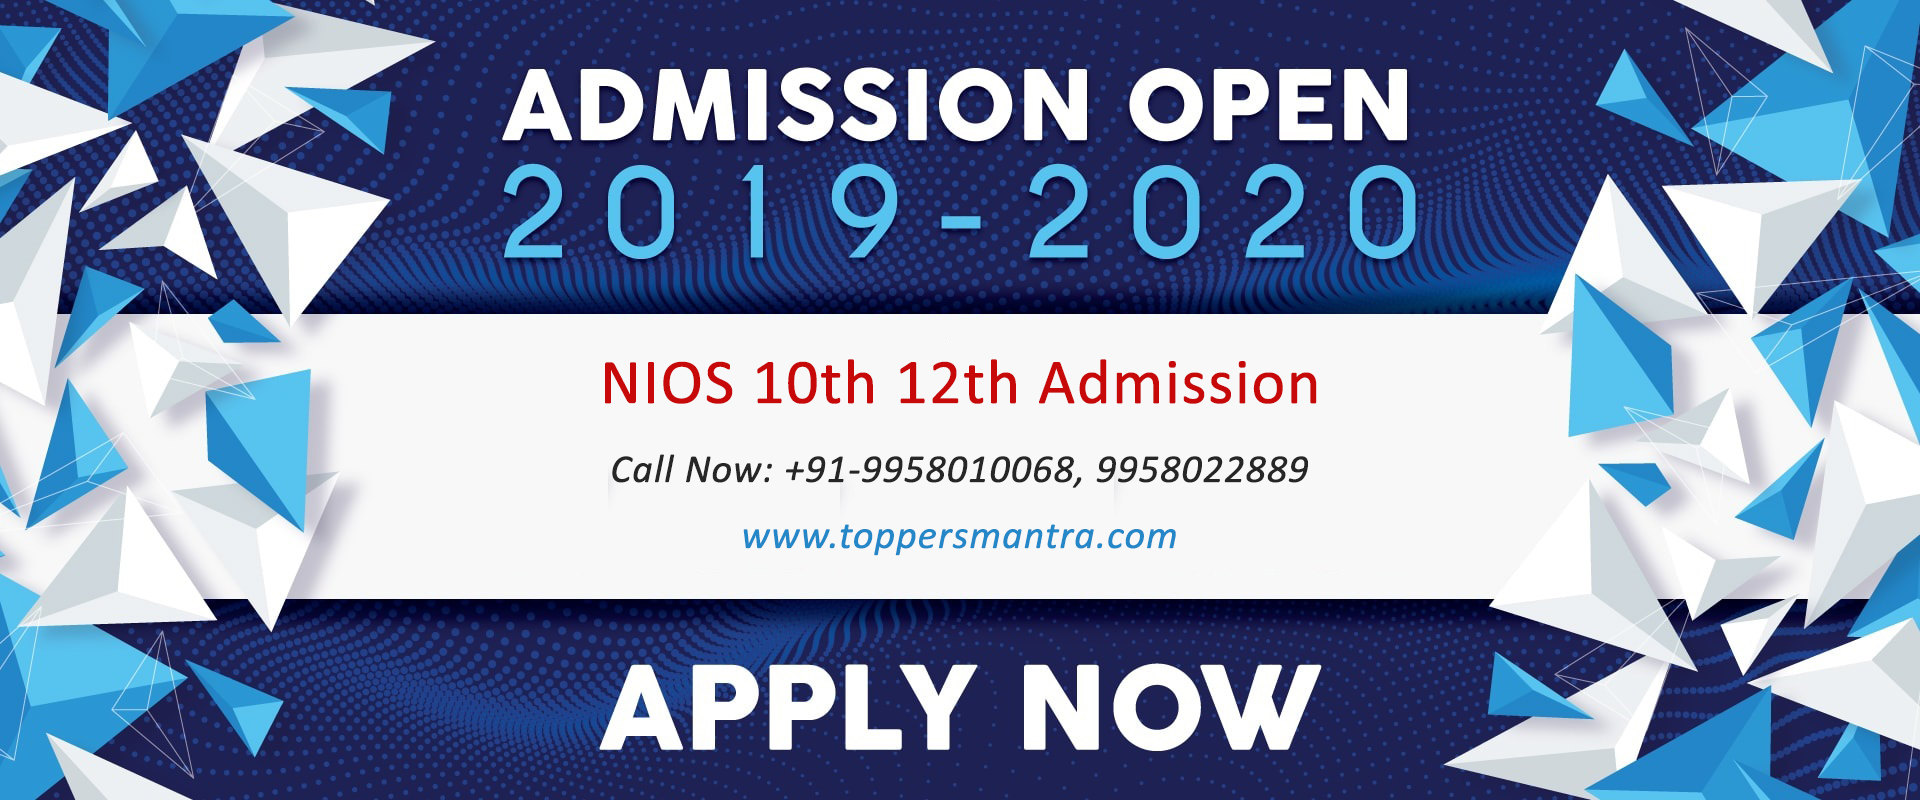 NIOS 10th 12th Admission